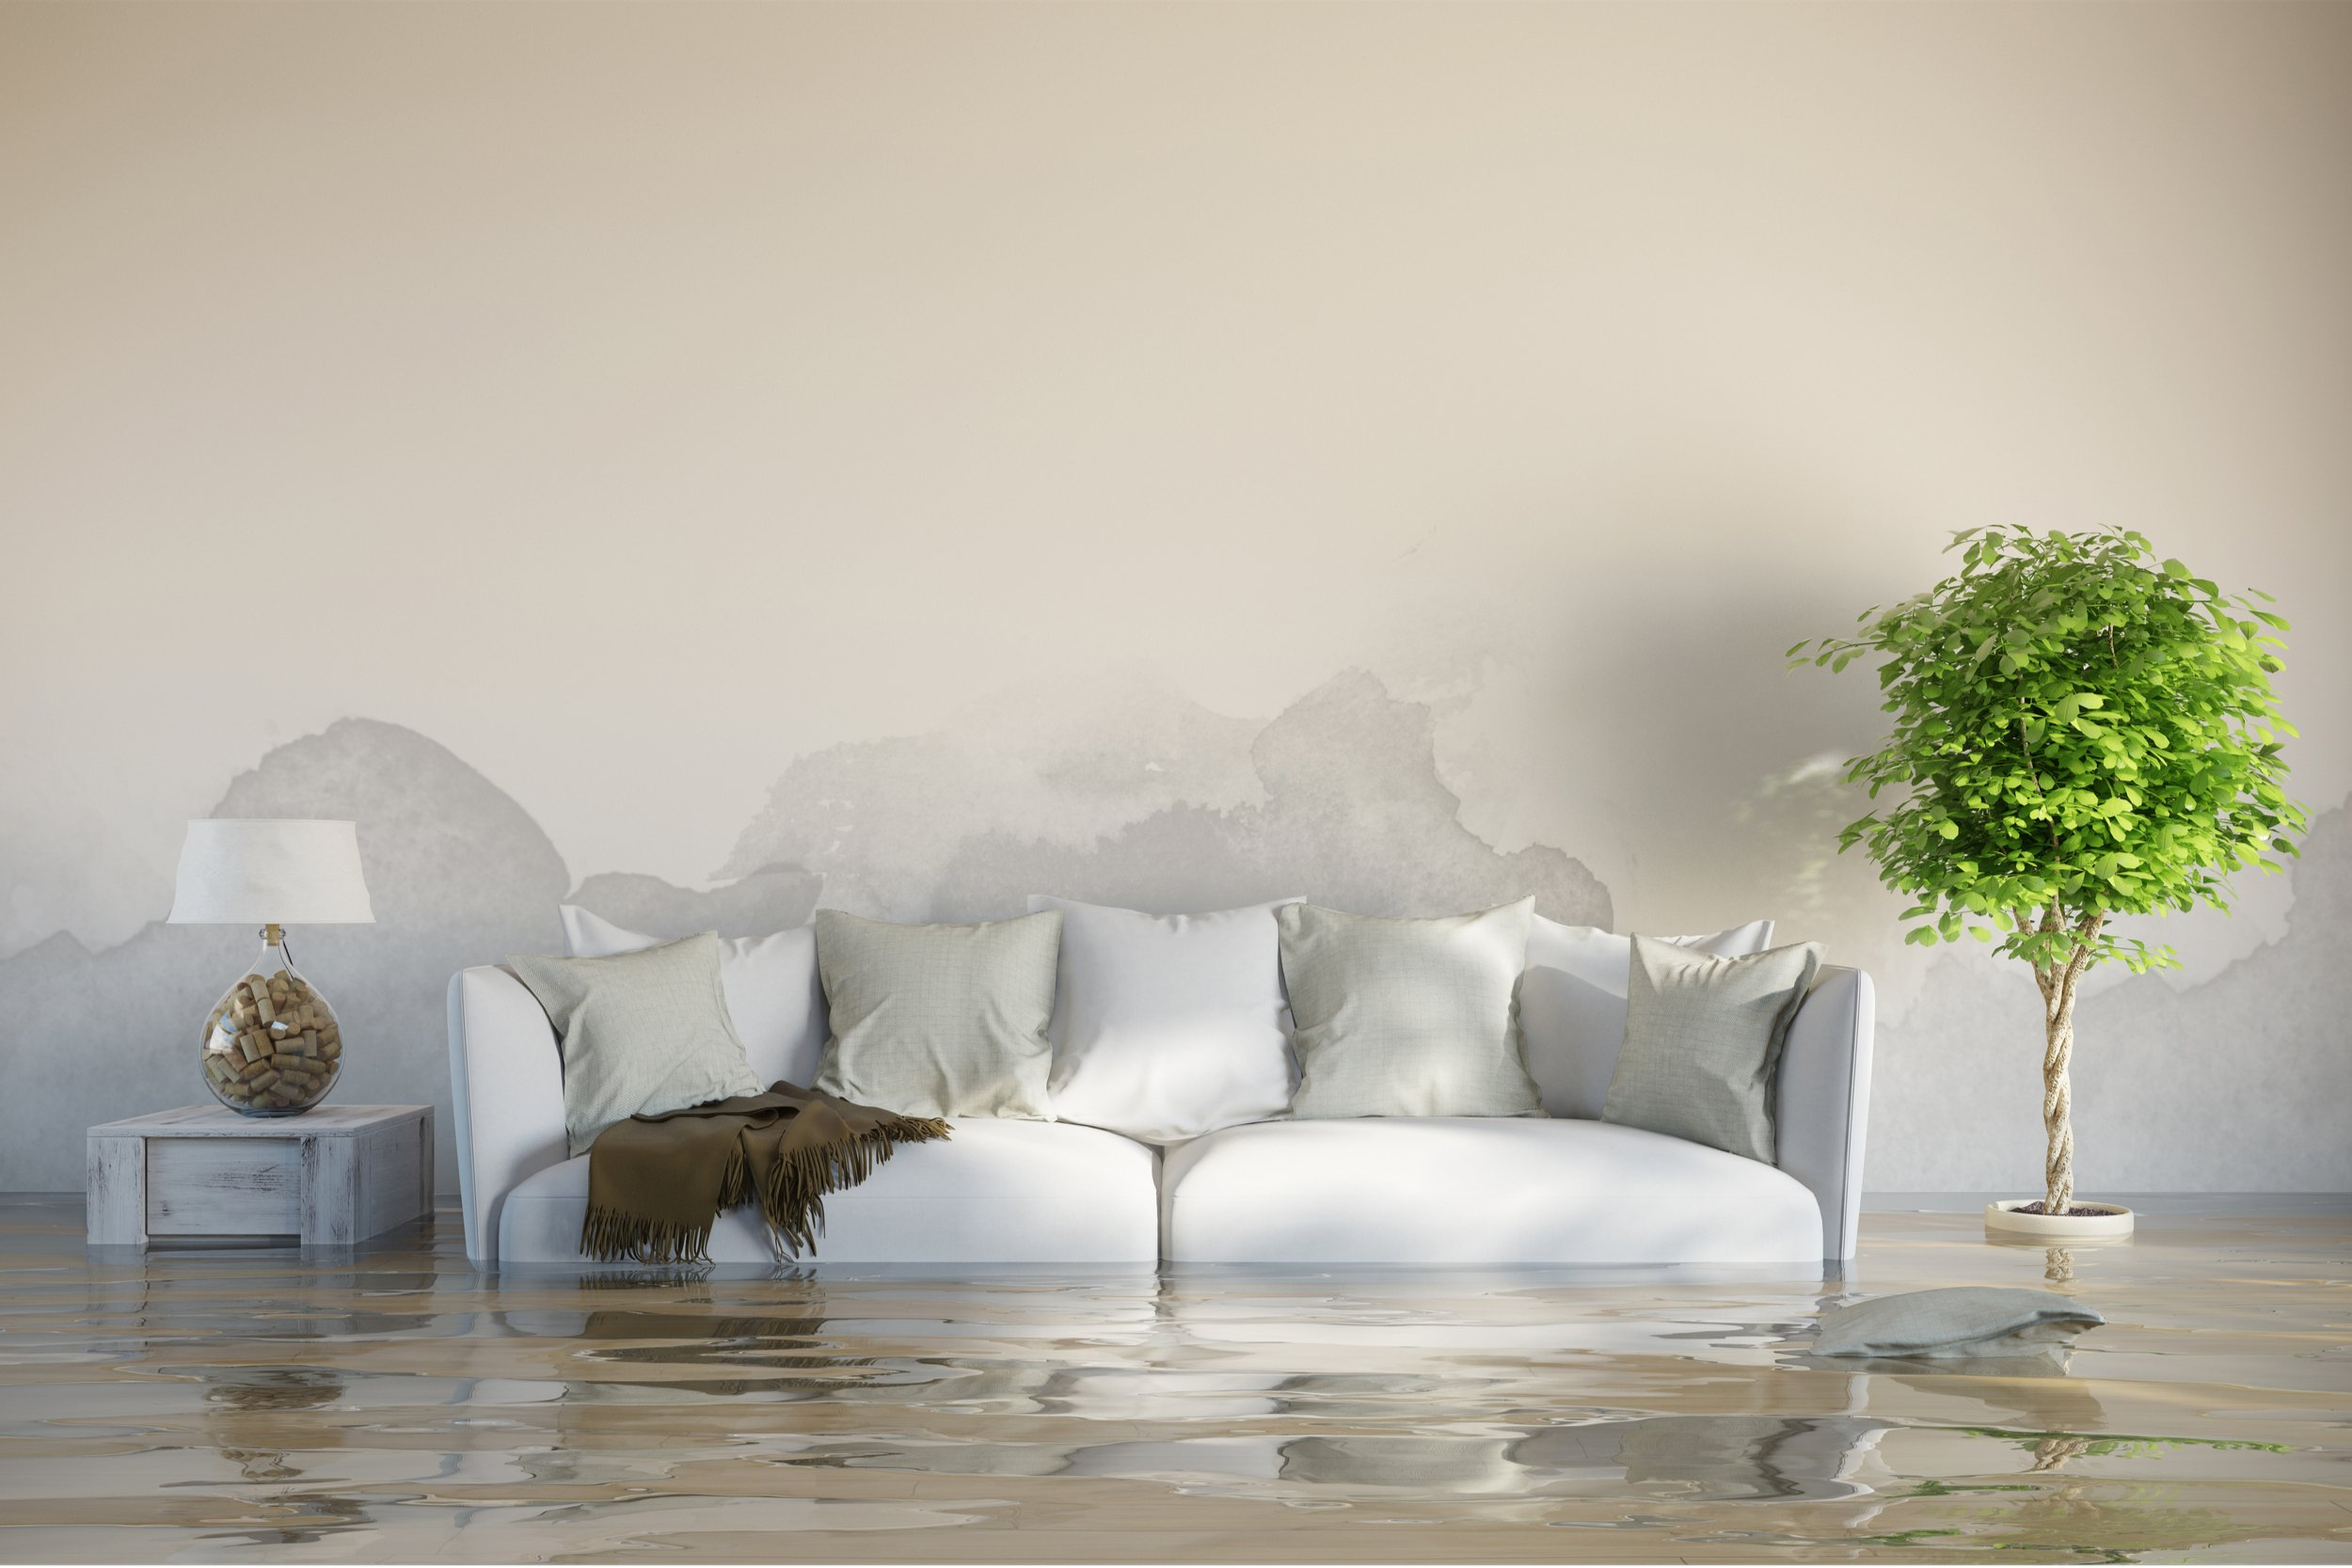 Water Damaged Living Room That Restored Air Could Help Restore And Dry Out With Their Disaster Restoration Service.